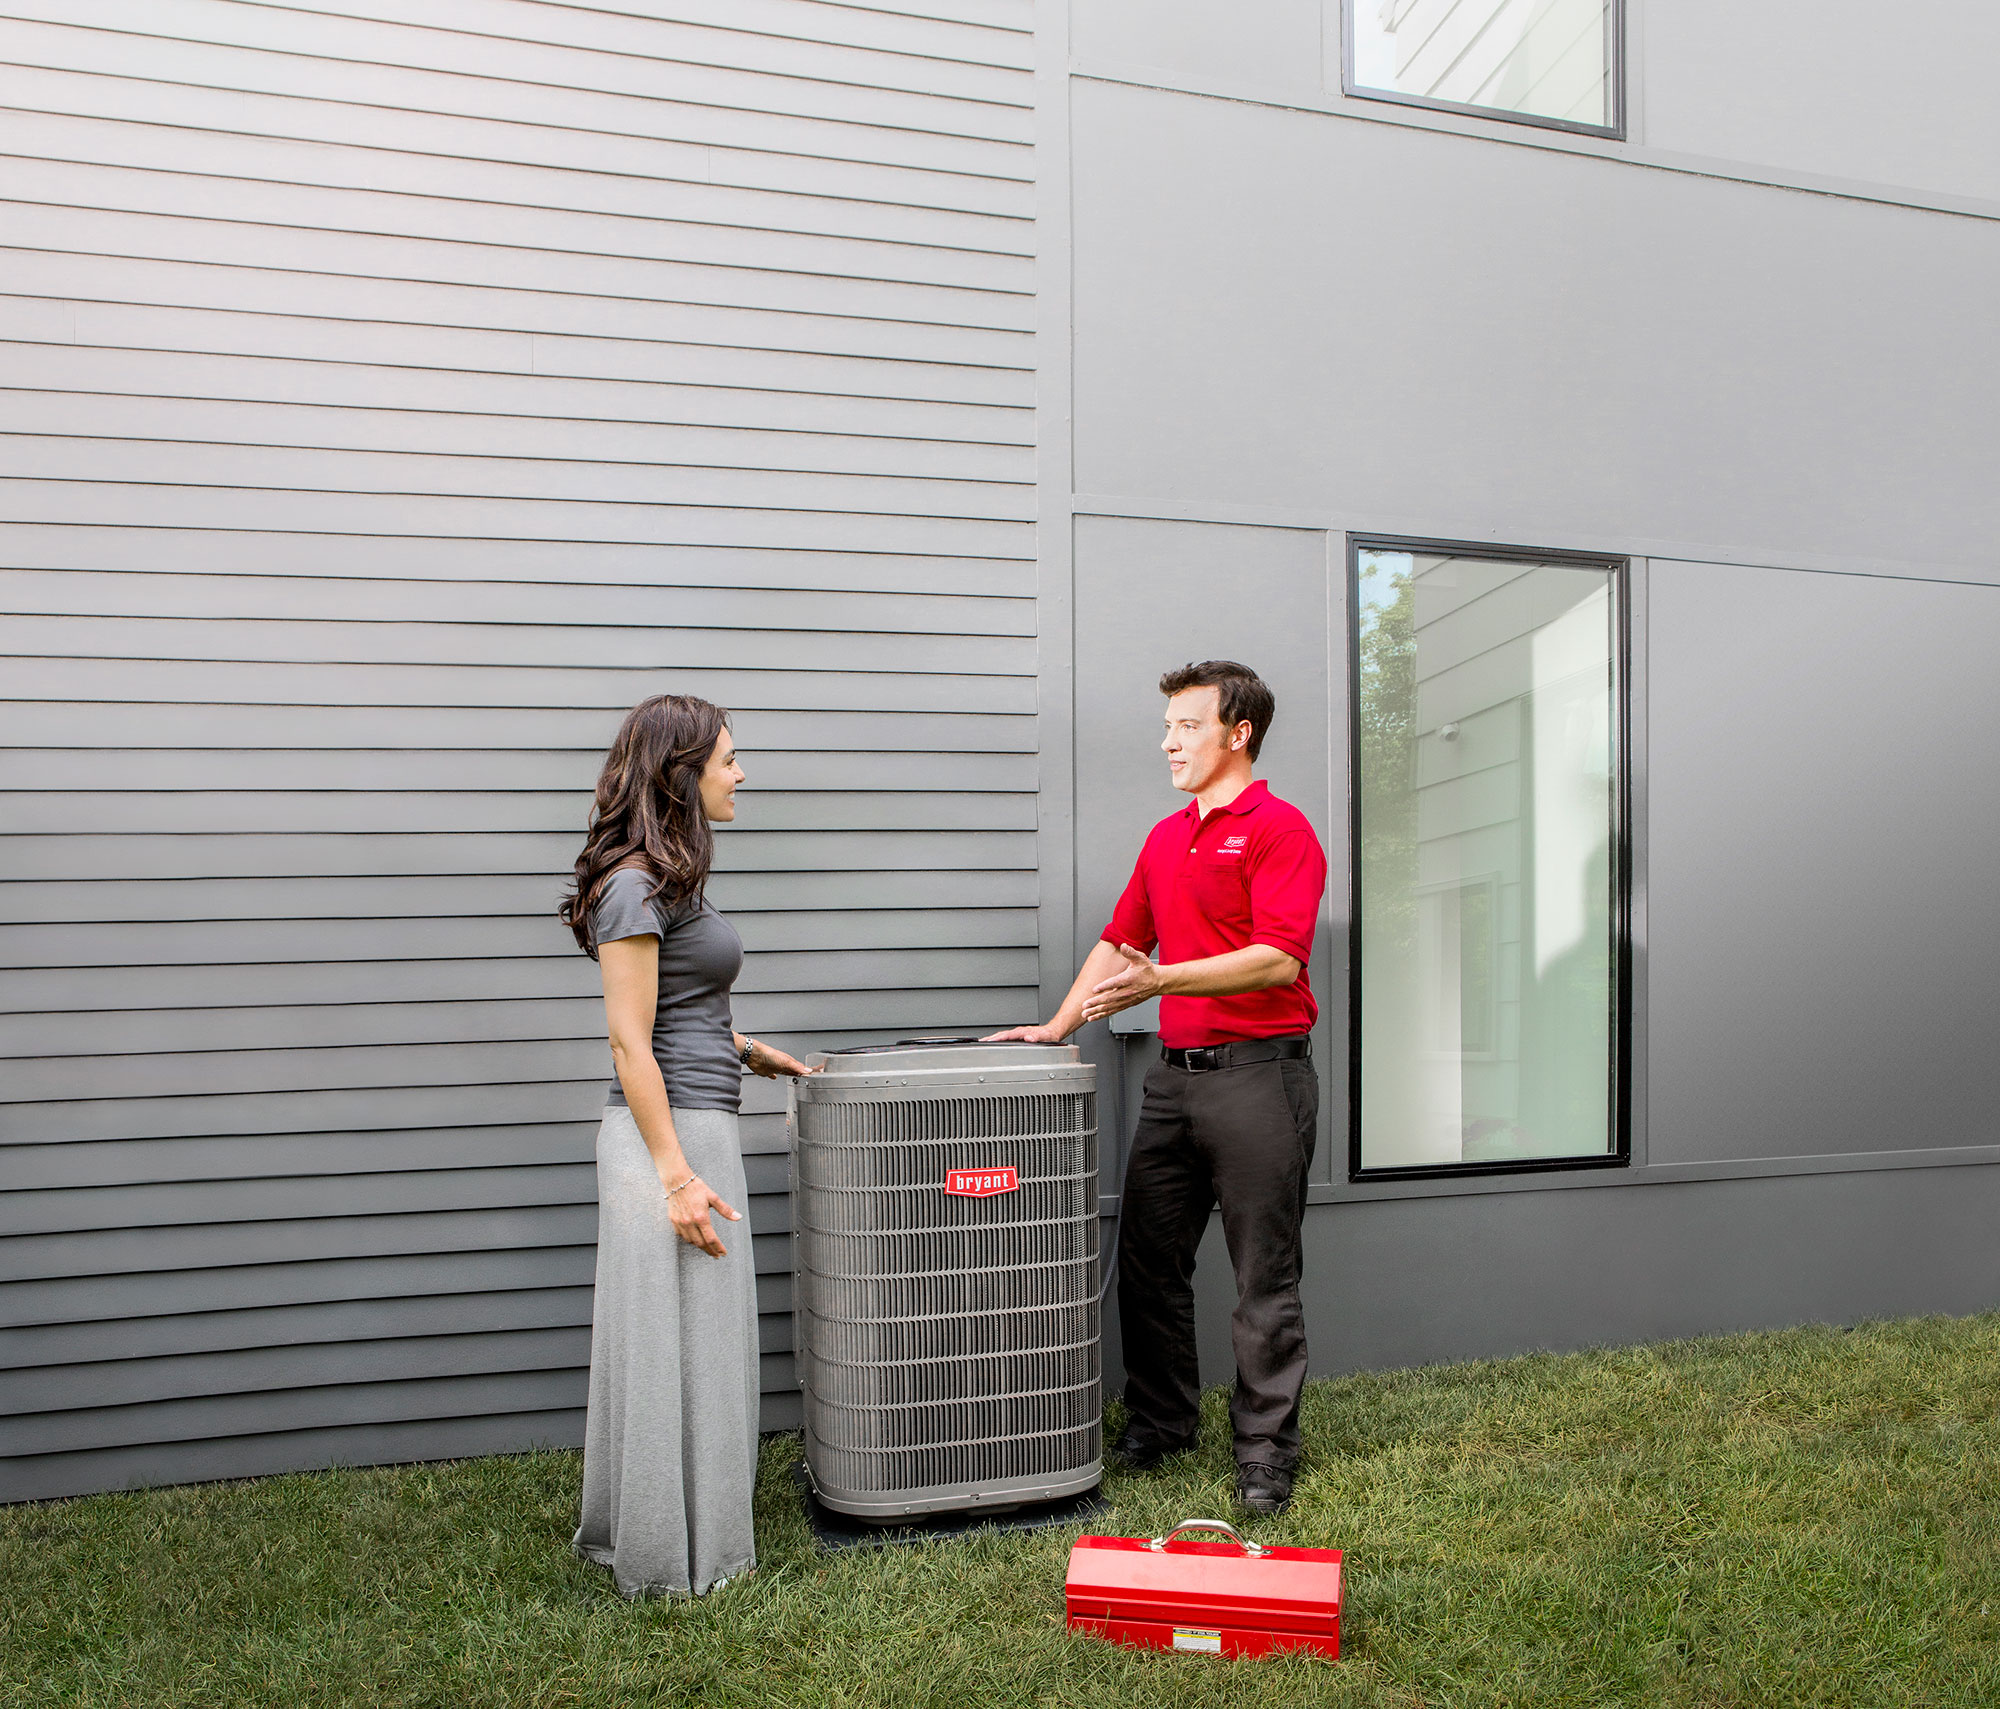 HVAC System Replacement Benefits